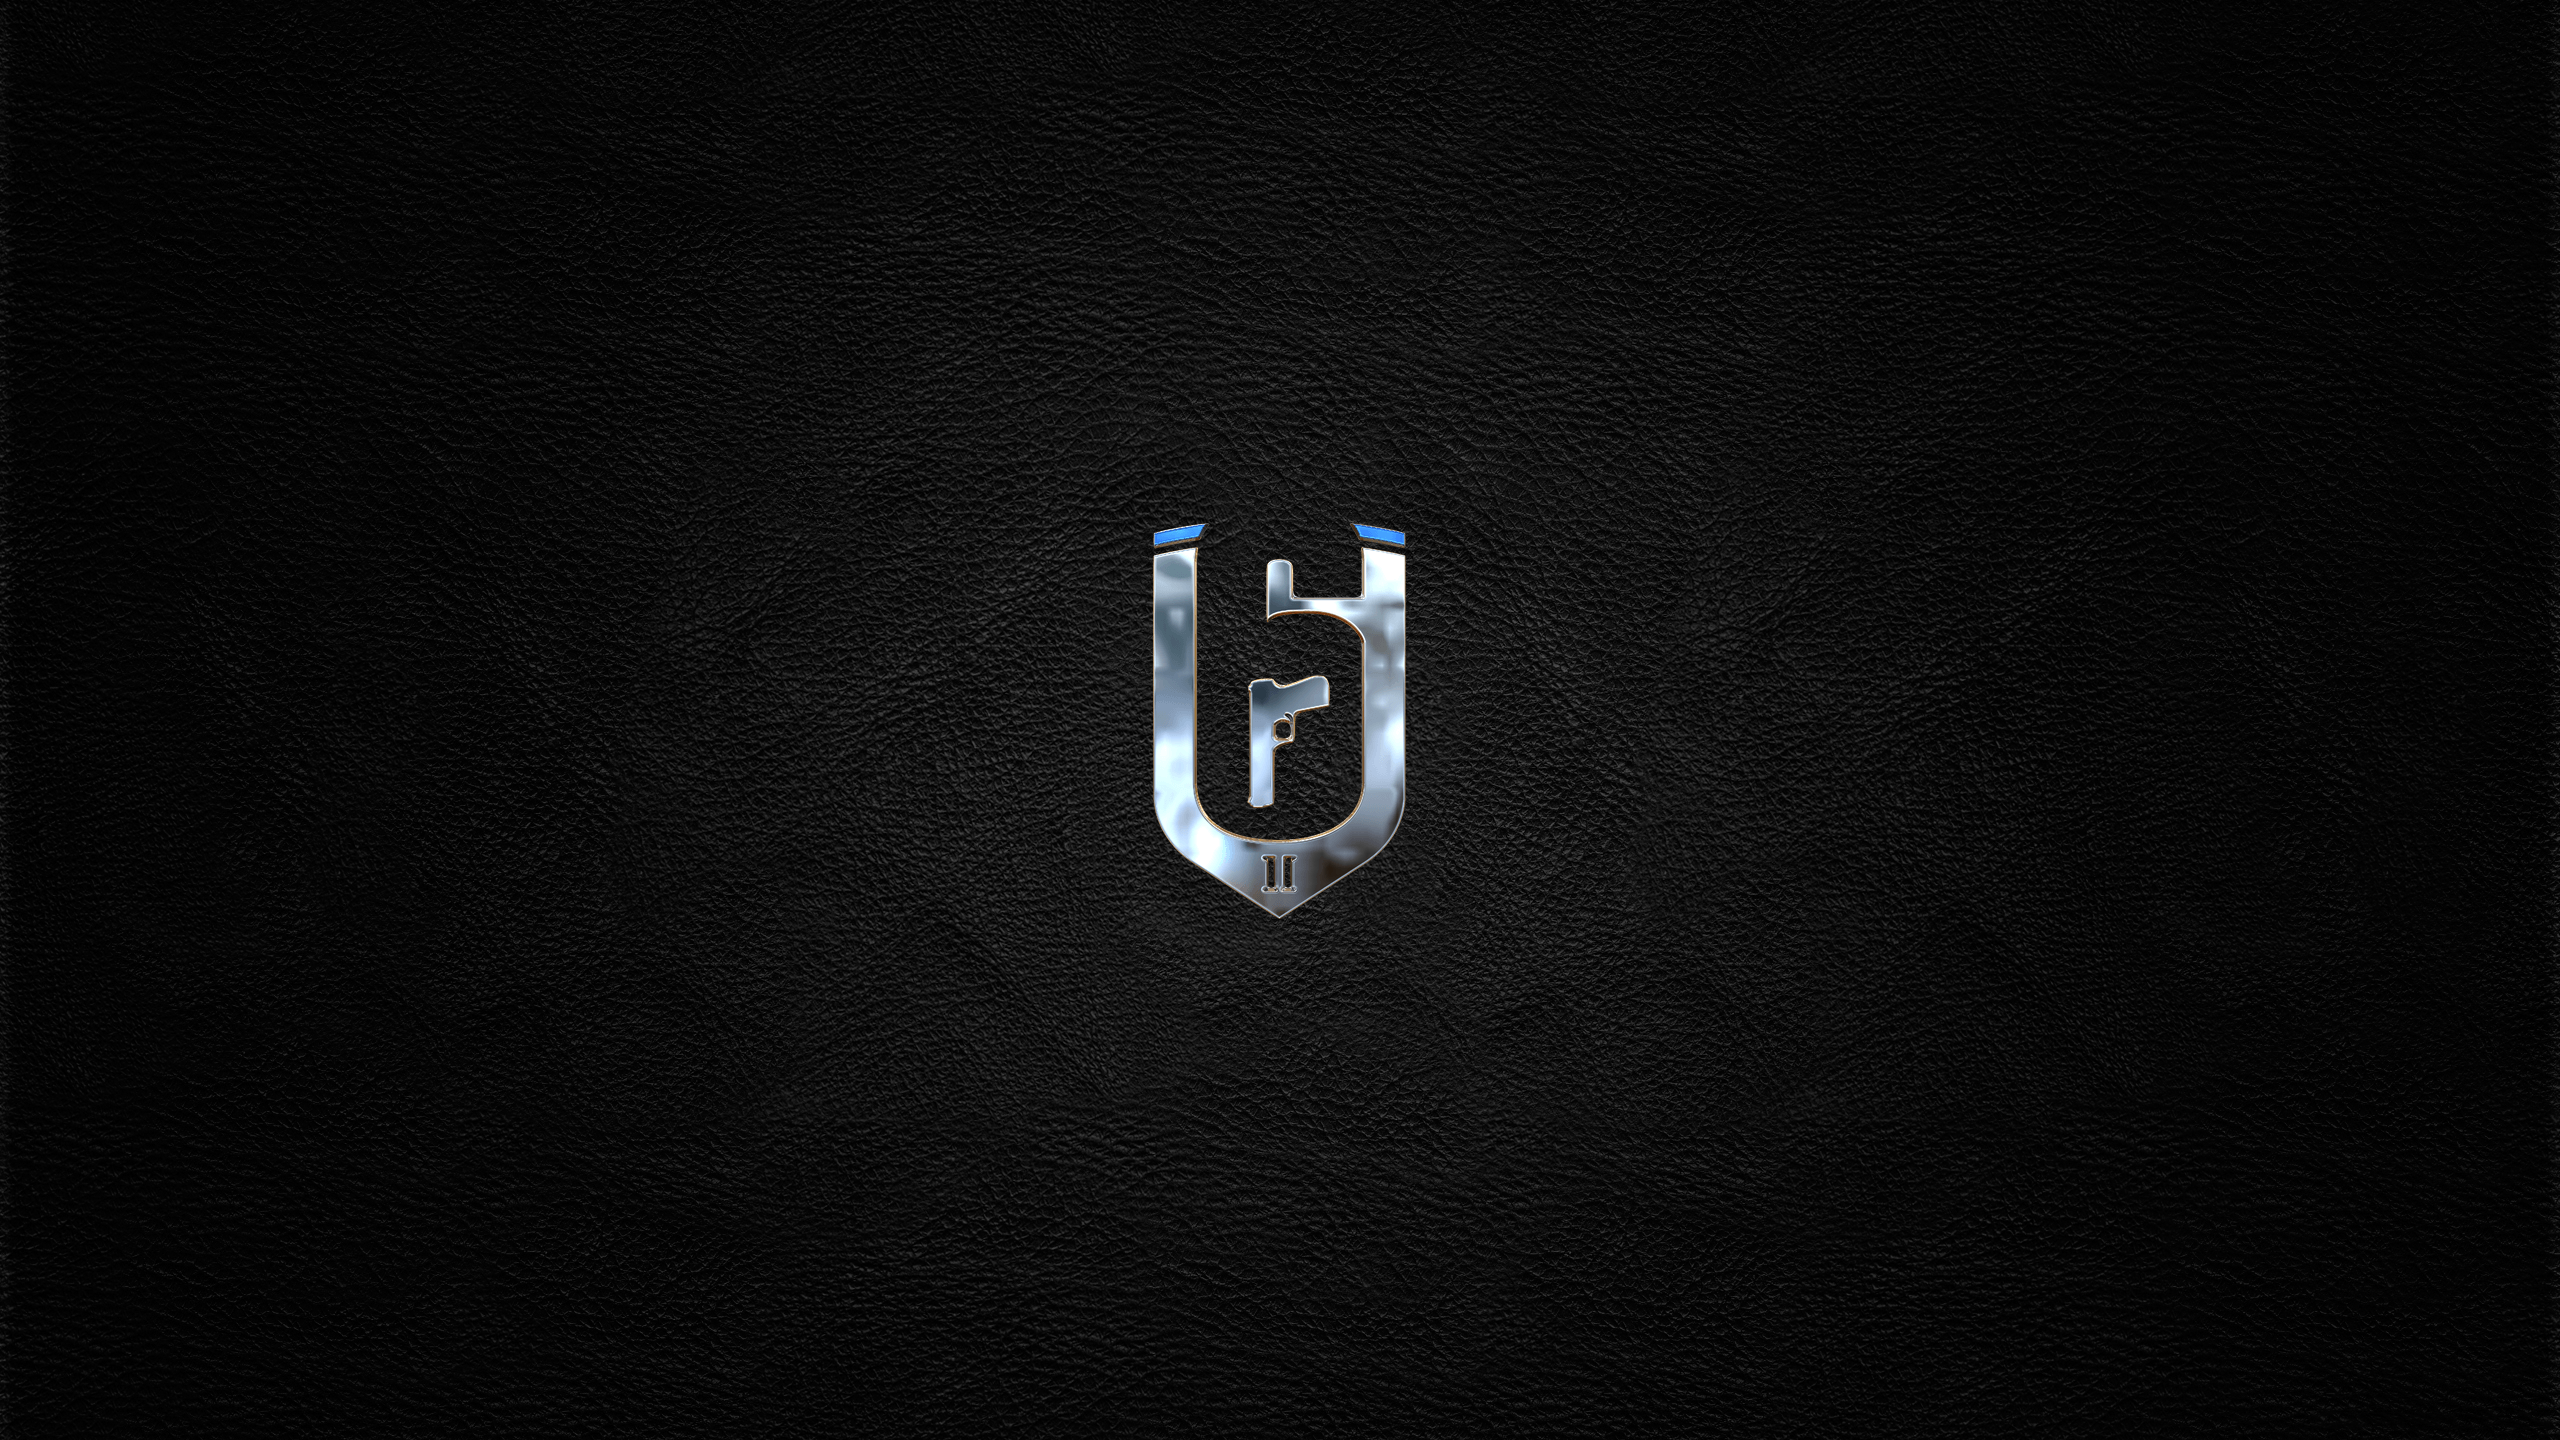 Rainbow 6 Siege Wallpapers - Wallpaper Cave